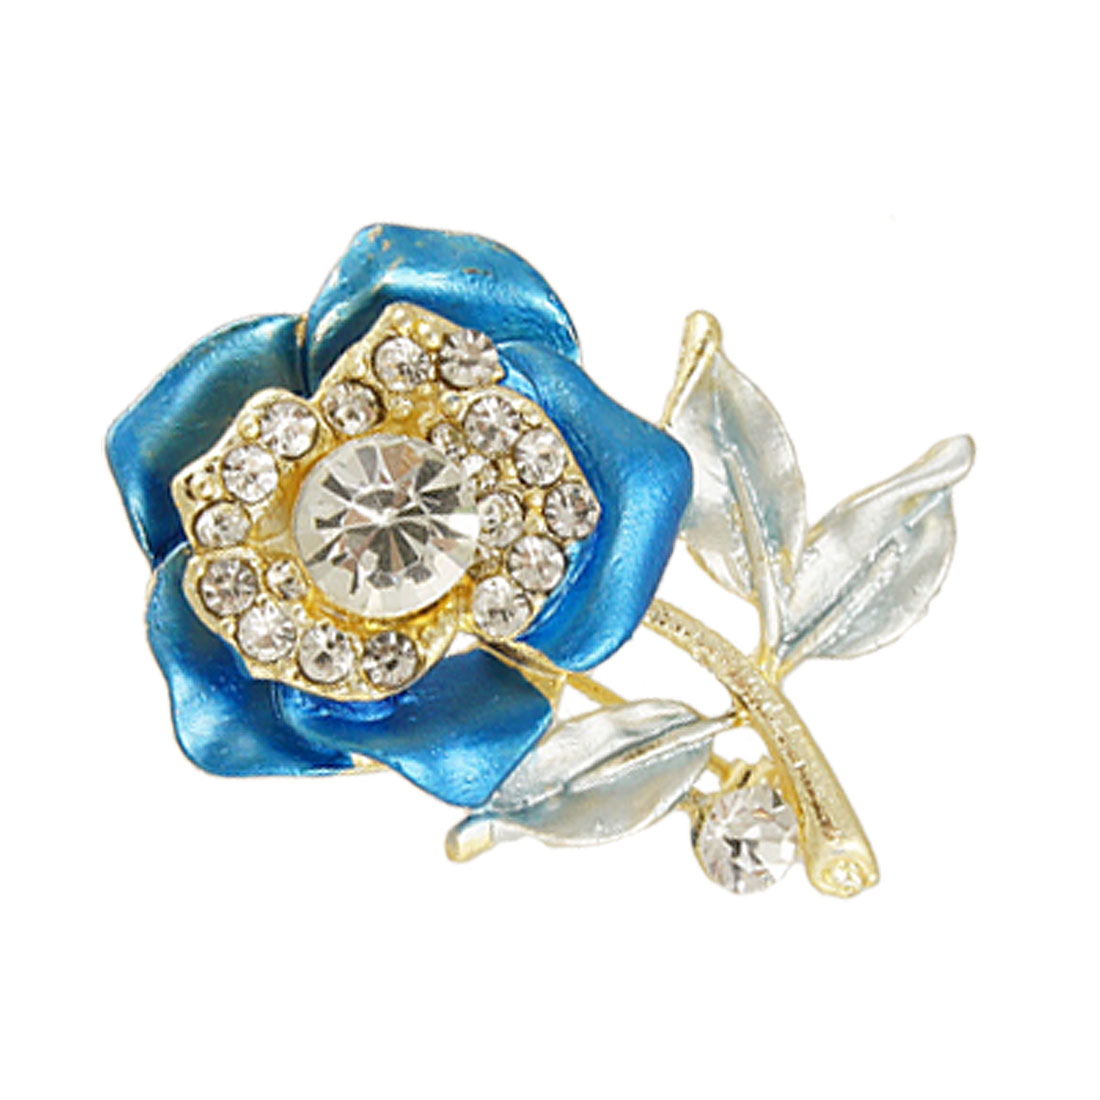 Rhinestone Inlaid Blue Rose Flower Safety Pin Closure Brooch Jewelry